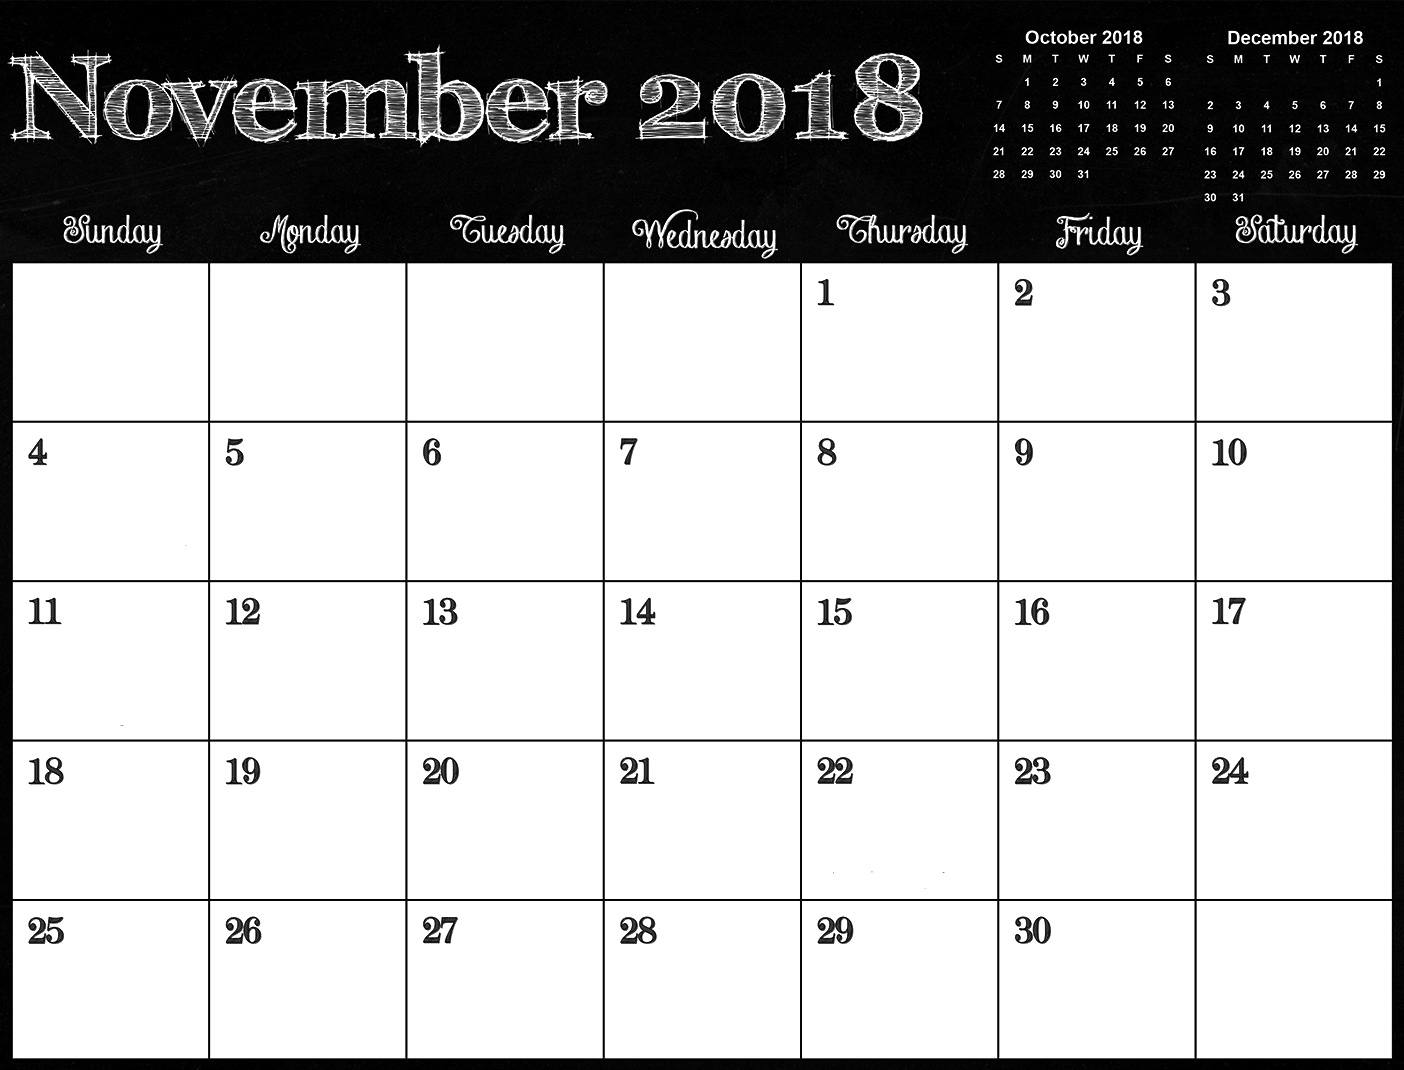 november 2018 calendar pdf word excel template printable 2018::November 2018 Calendar Pdf